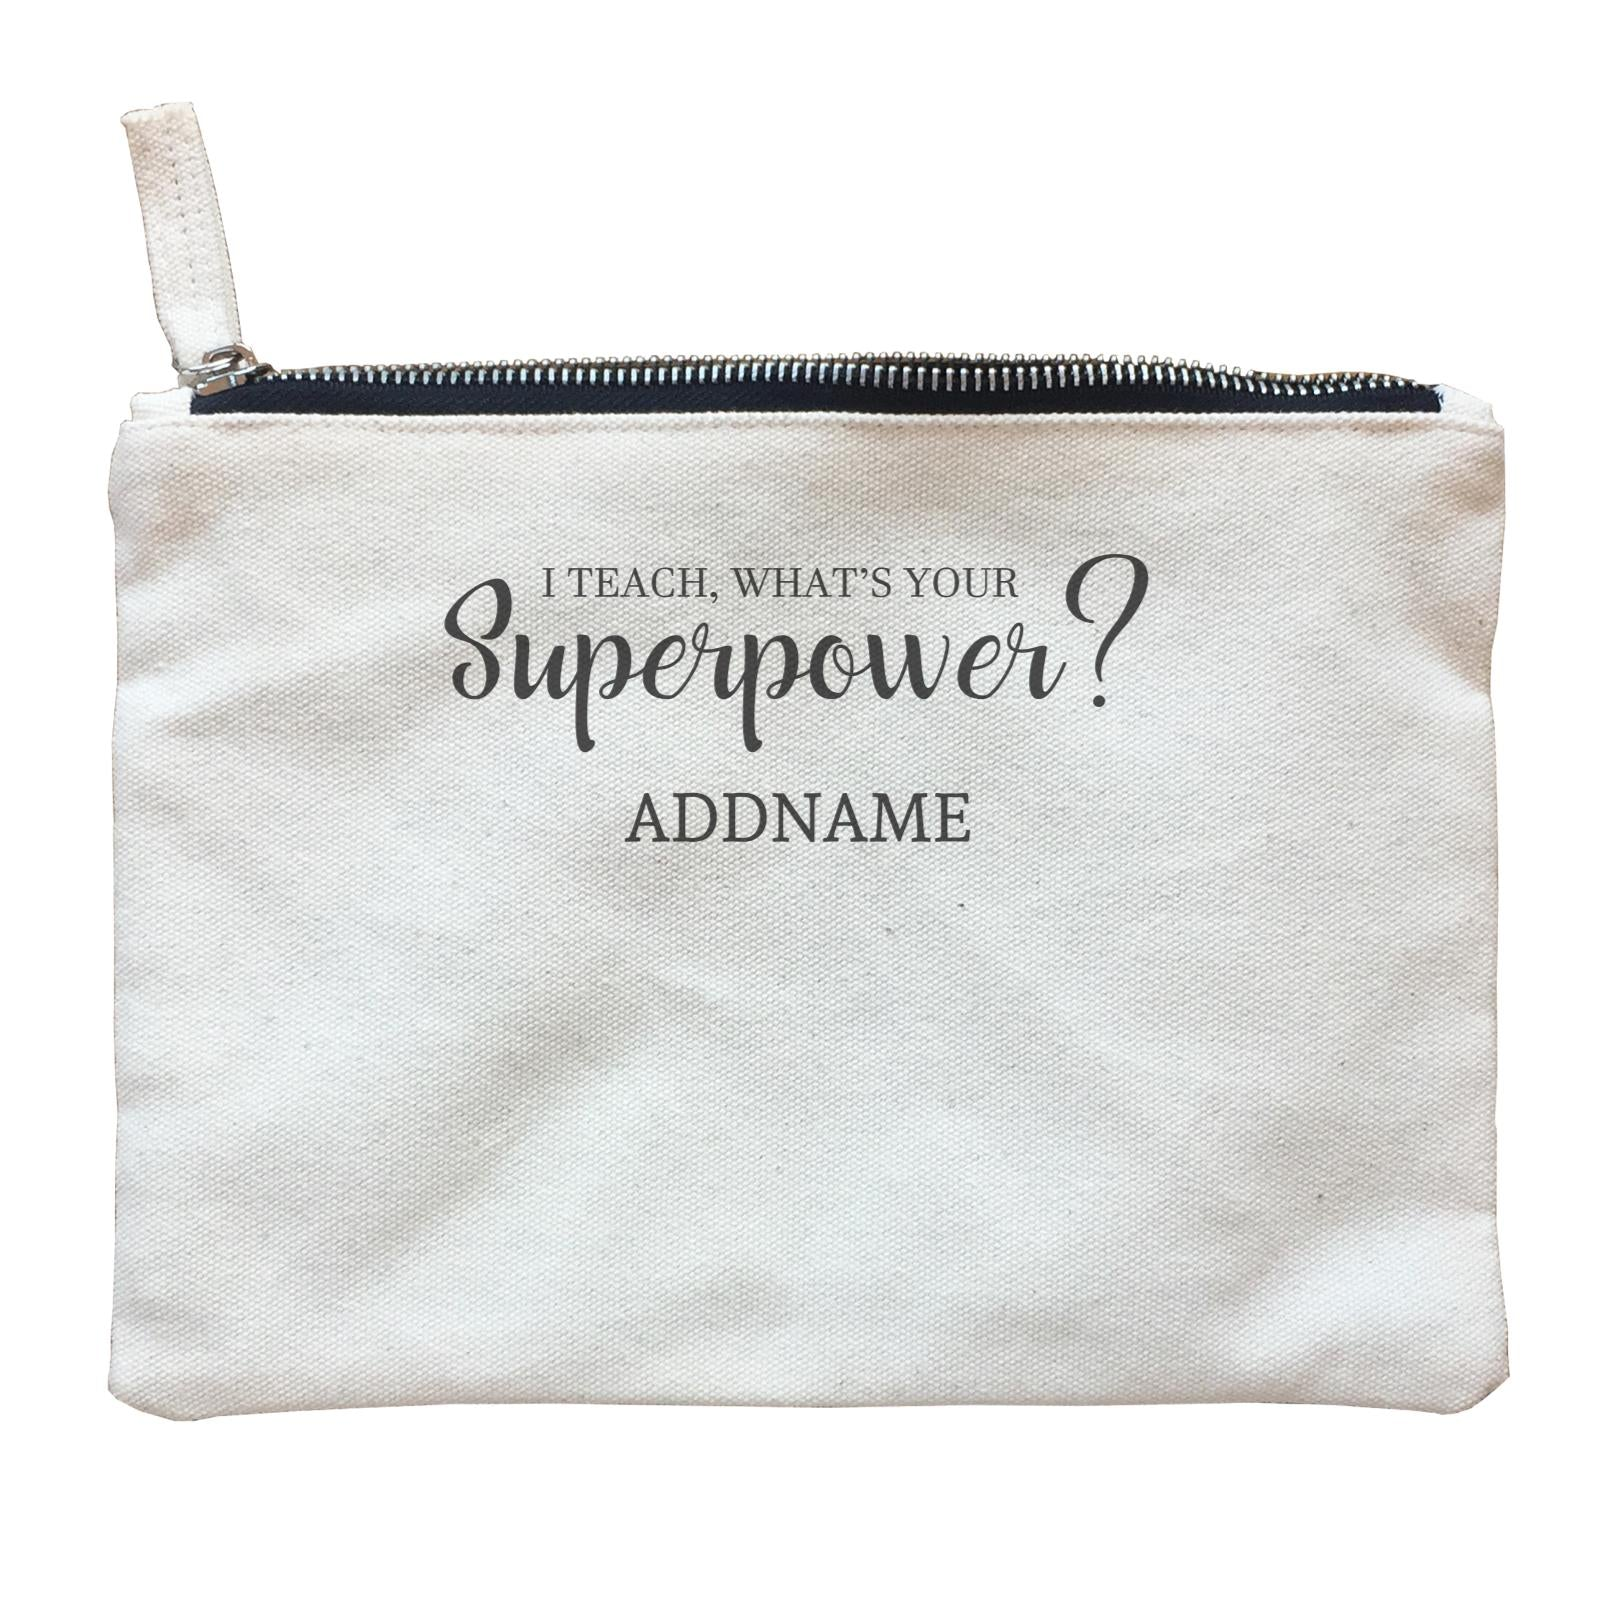 Super Teachers I Teach What's Your Superpower Addname Zipper Pouch